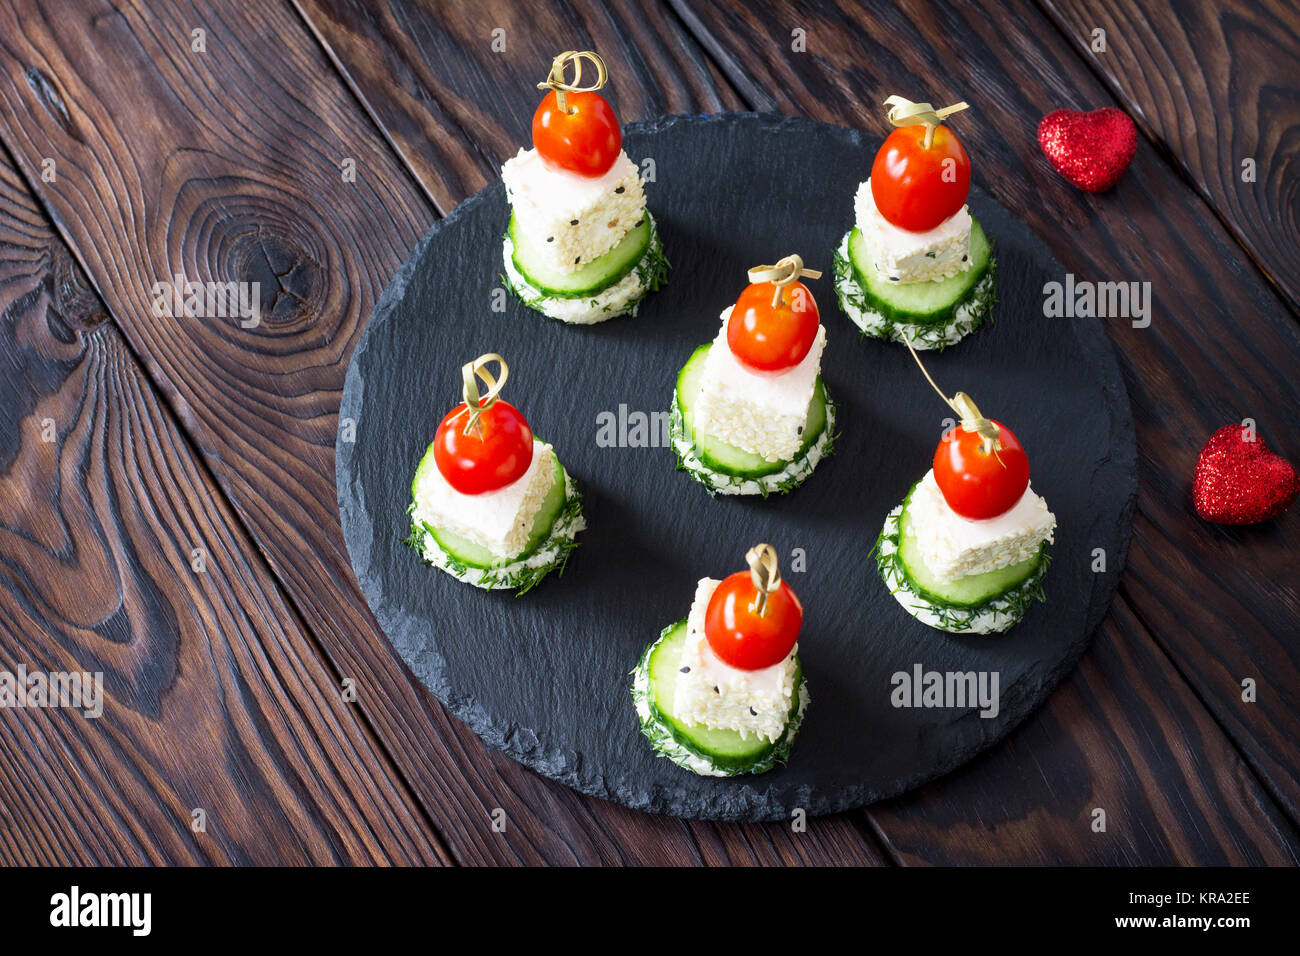 Appetizer canape with white bread, feta cheese, cucumber and cherry tomatoes on a wooden table. - Stock Image